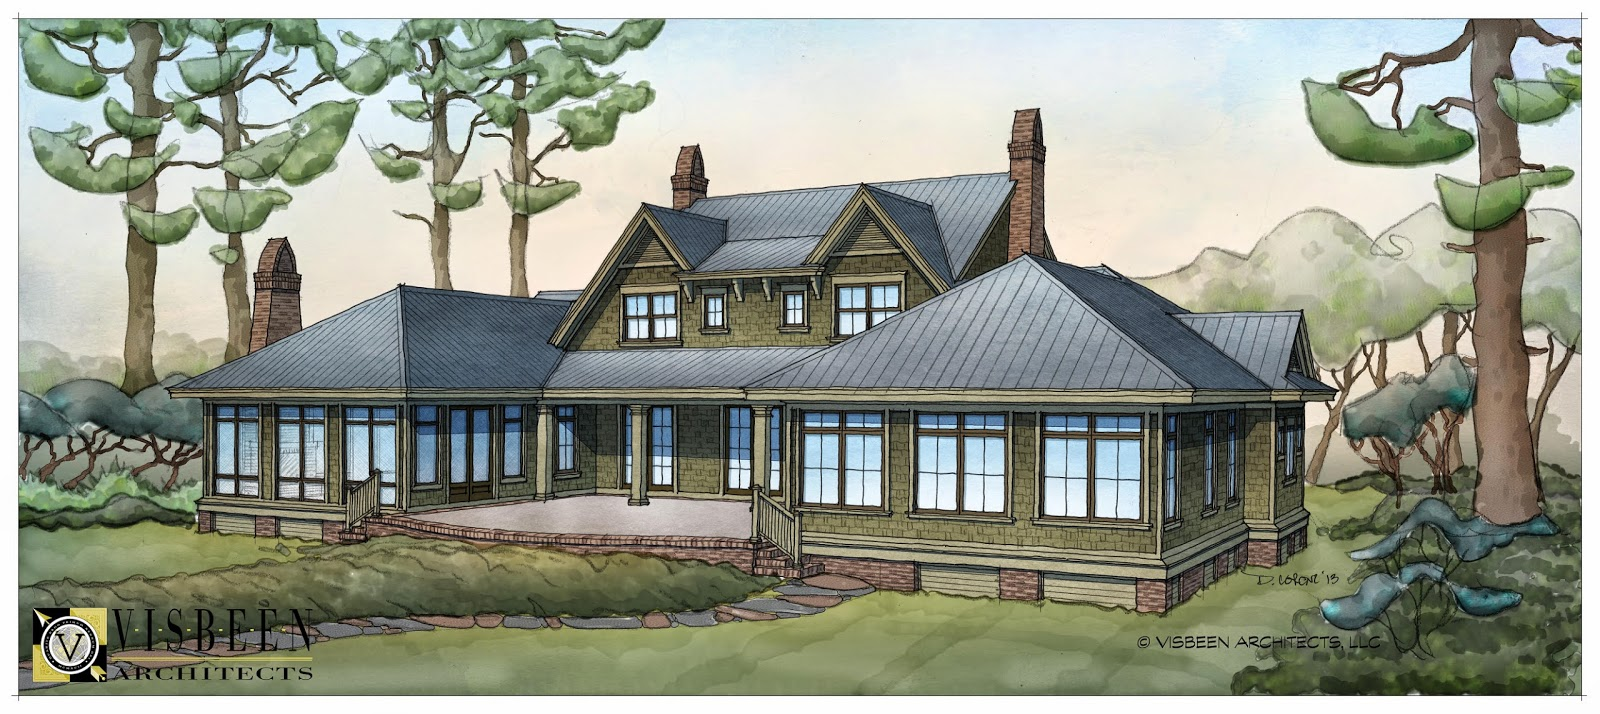 Southern living in style visbeen architects for Visbeen architects georgetown